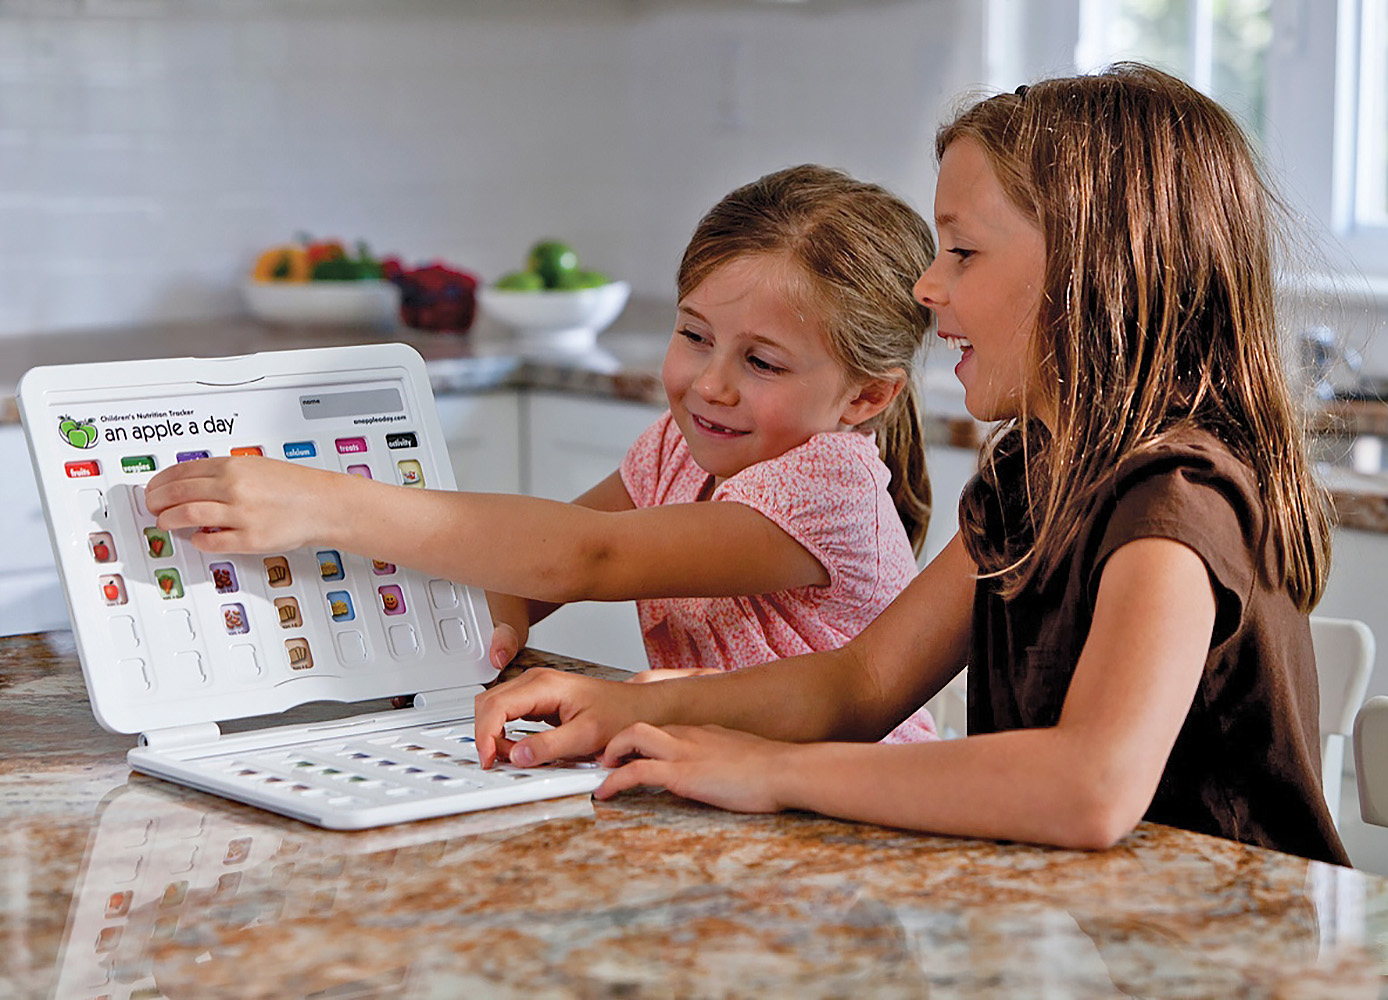 Product development of a children's nutritional tracking system.